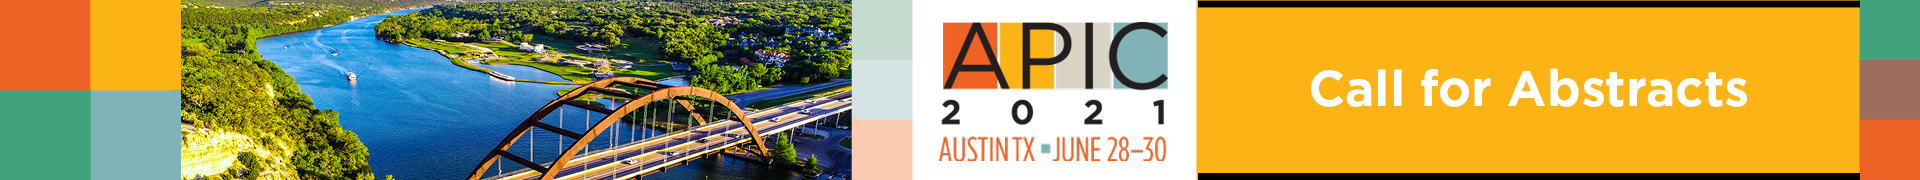 APIC 2021 Call for Abstracts Event Banner